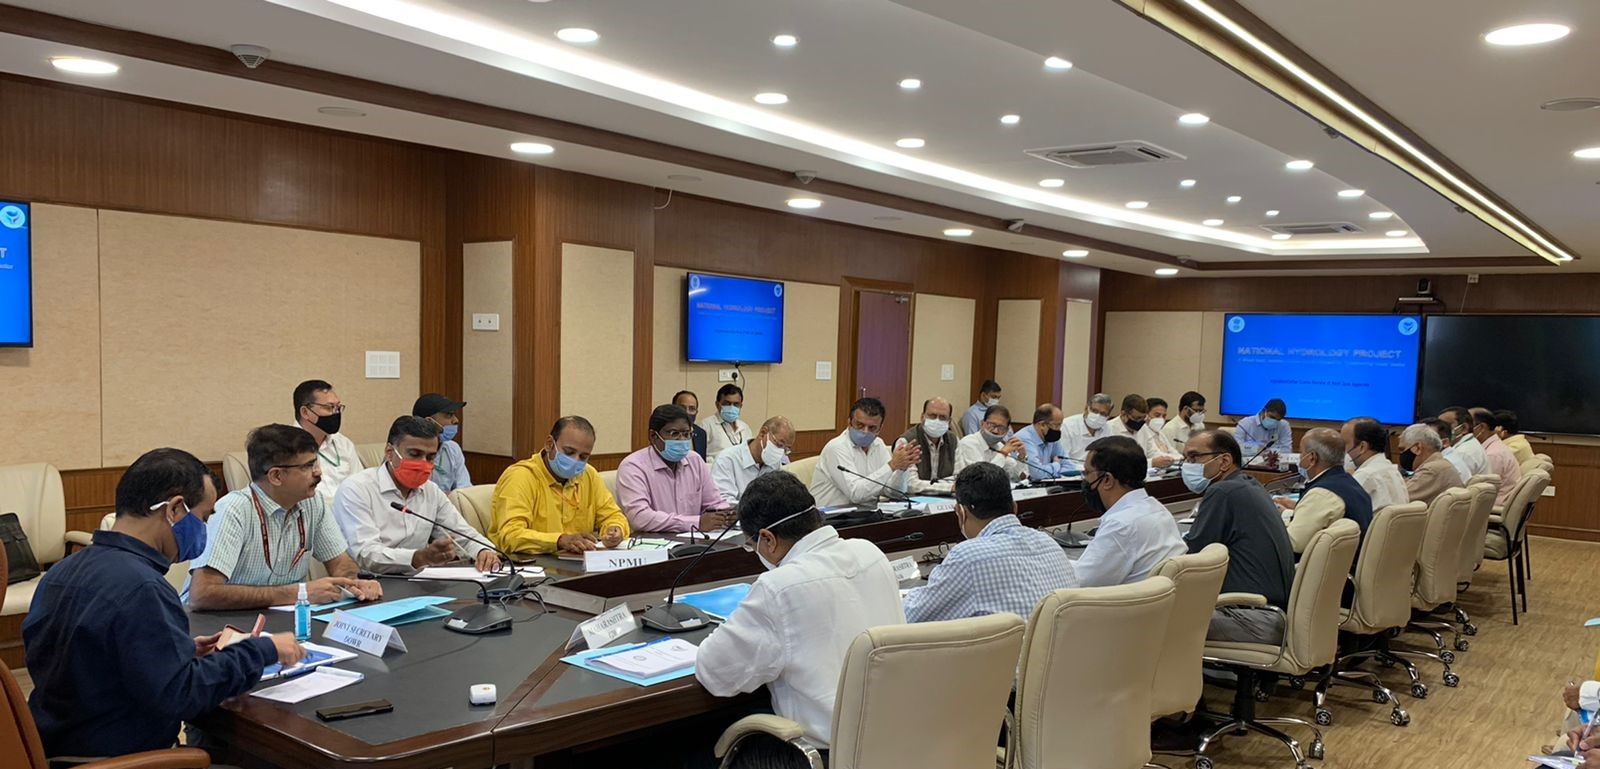 3rd Zonal Level review Meeting for South Zone Implementing Agencies under National Hydrology Project.